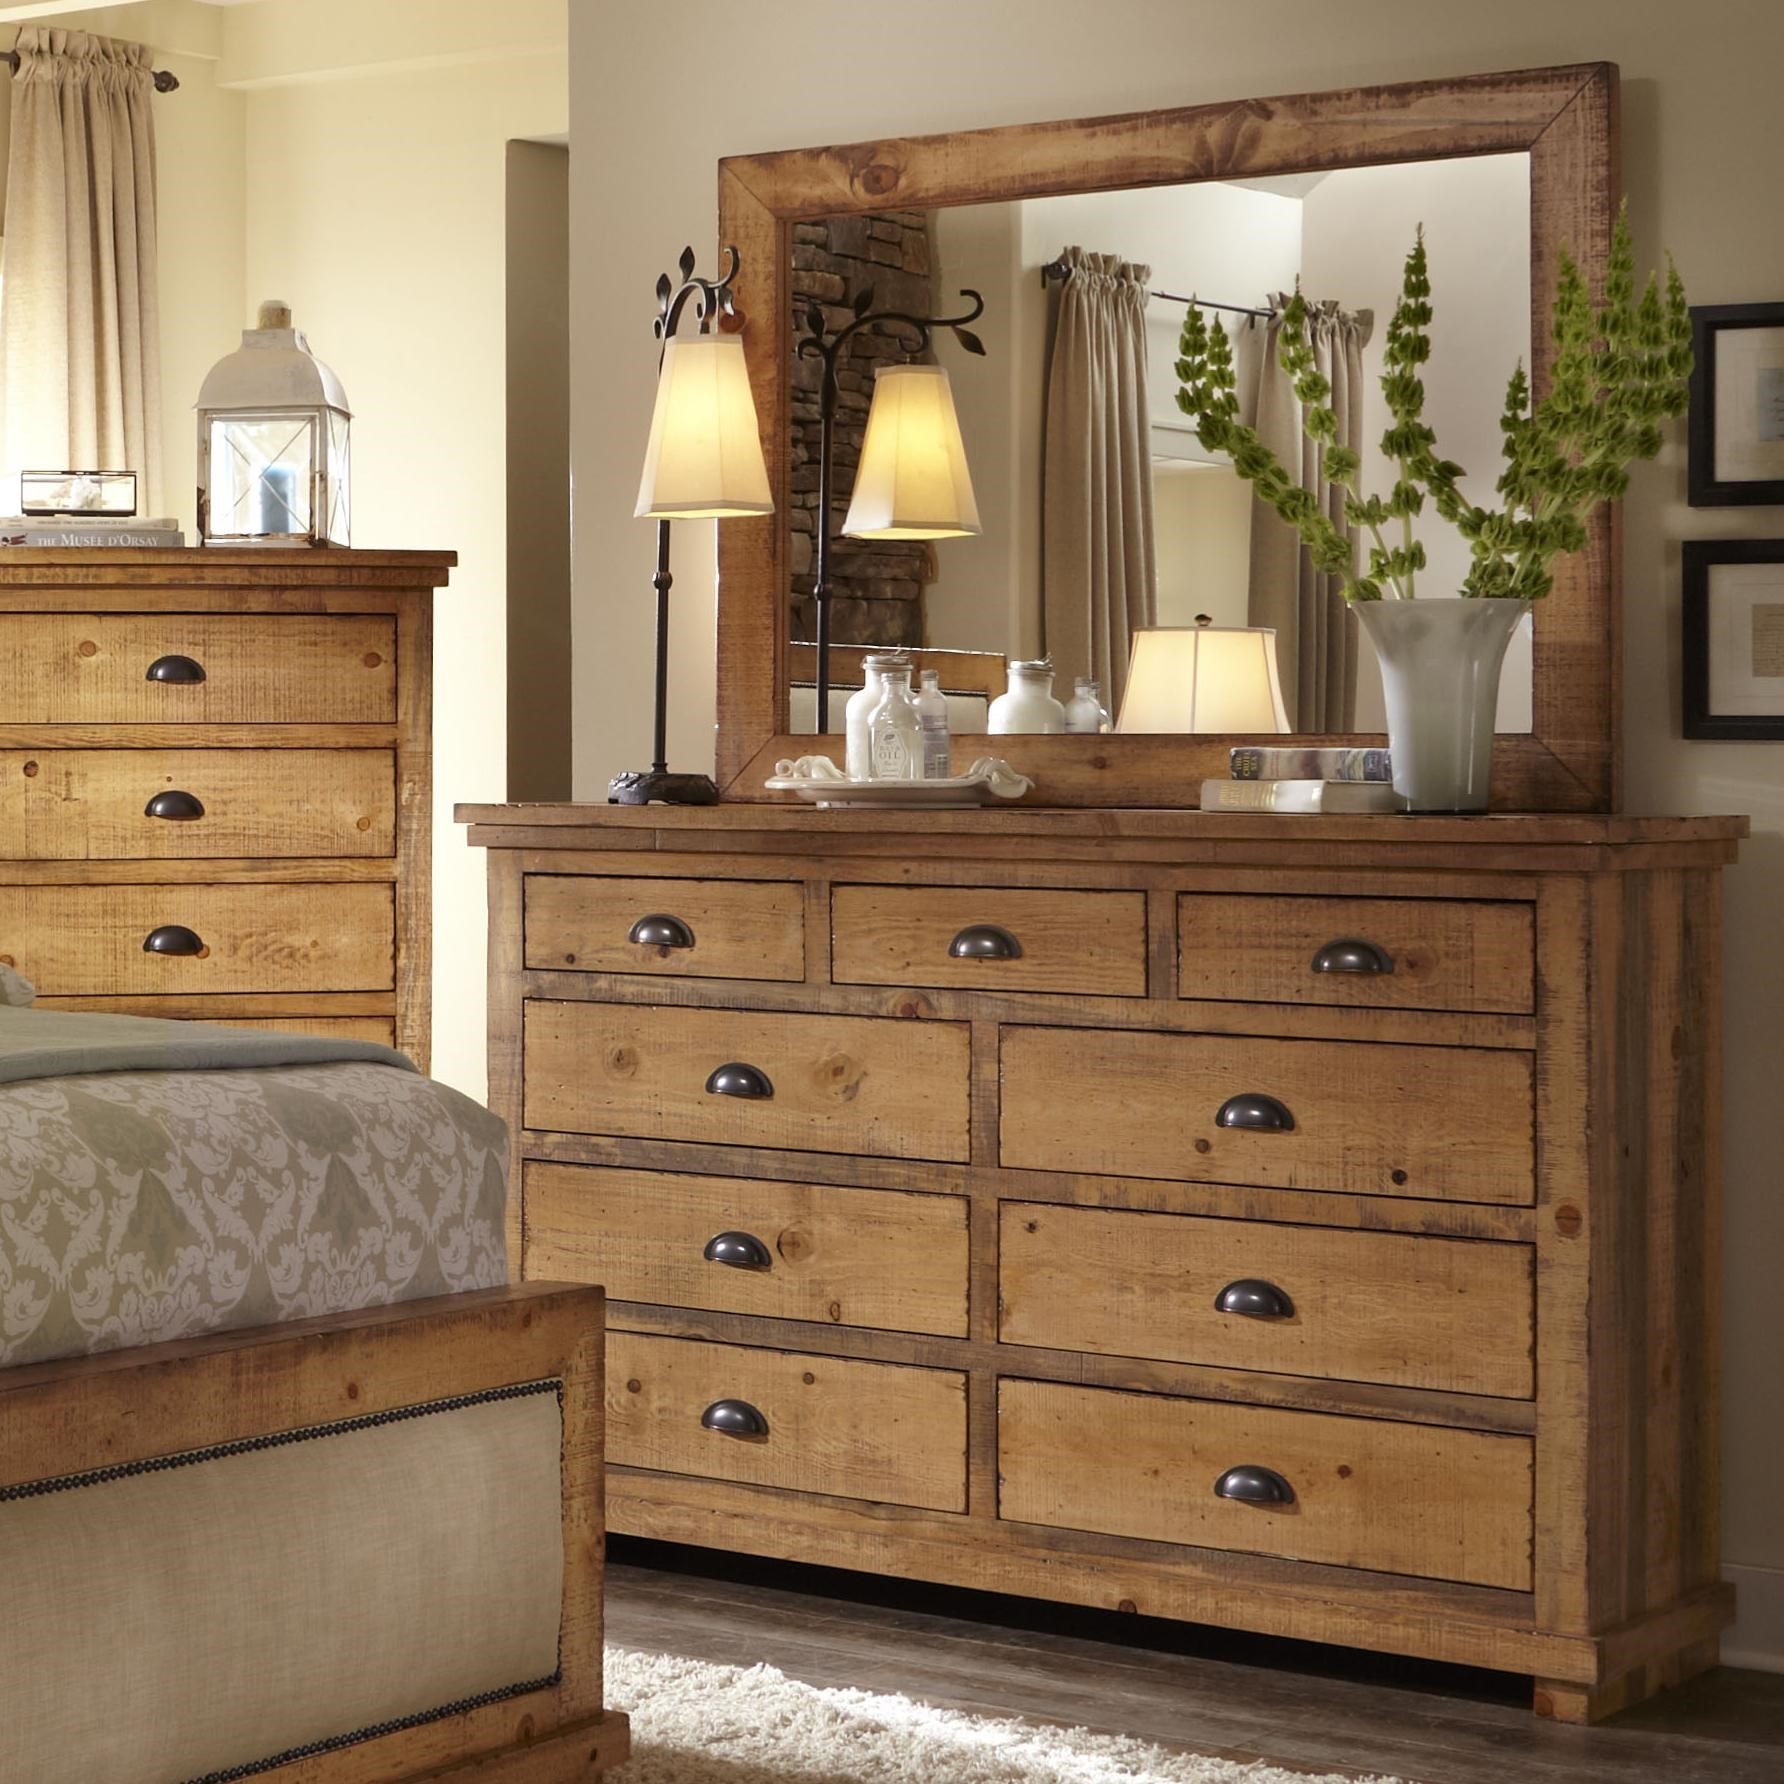 Cheap dresser with mirror furniture dresser furniture for Affordable furniture on 610